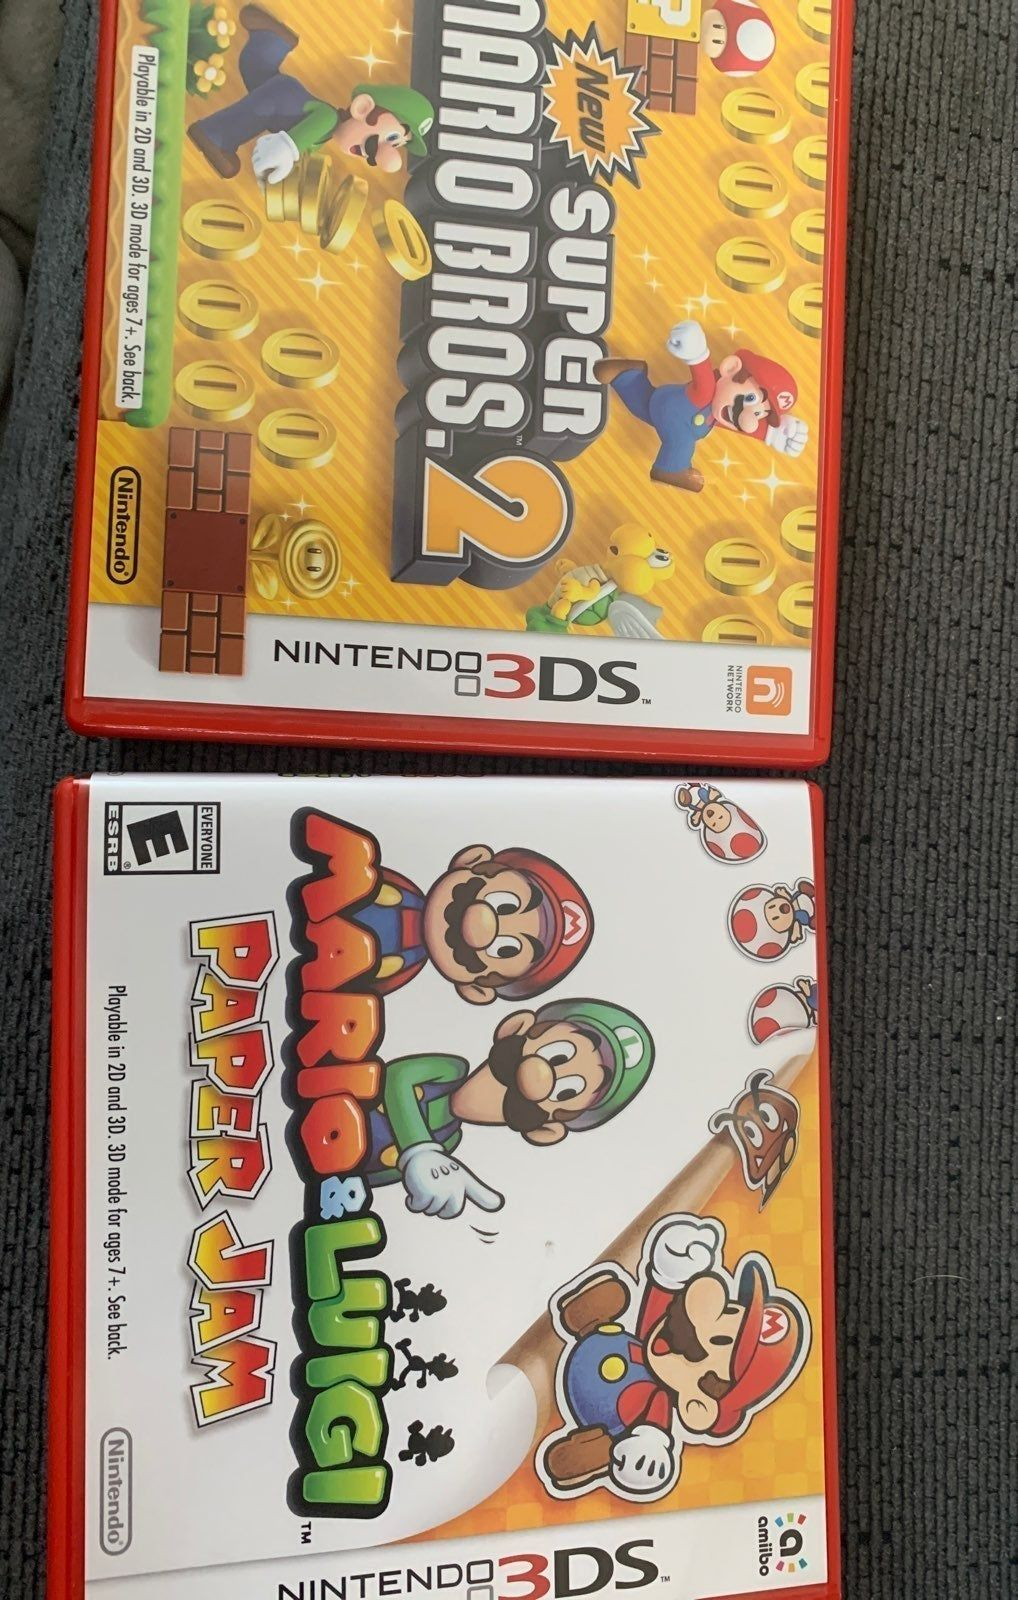 Two Mario Games In Cases Make Offer Super Mario Bros 2 Goes For 30 At Gamestop Paper Jam 35 Asking 38 For Both Mario And Luigi Super Mario Bros Mario Games